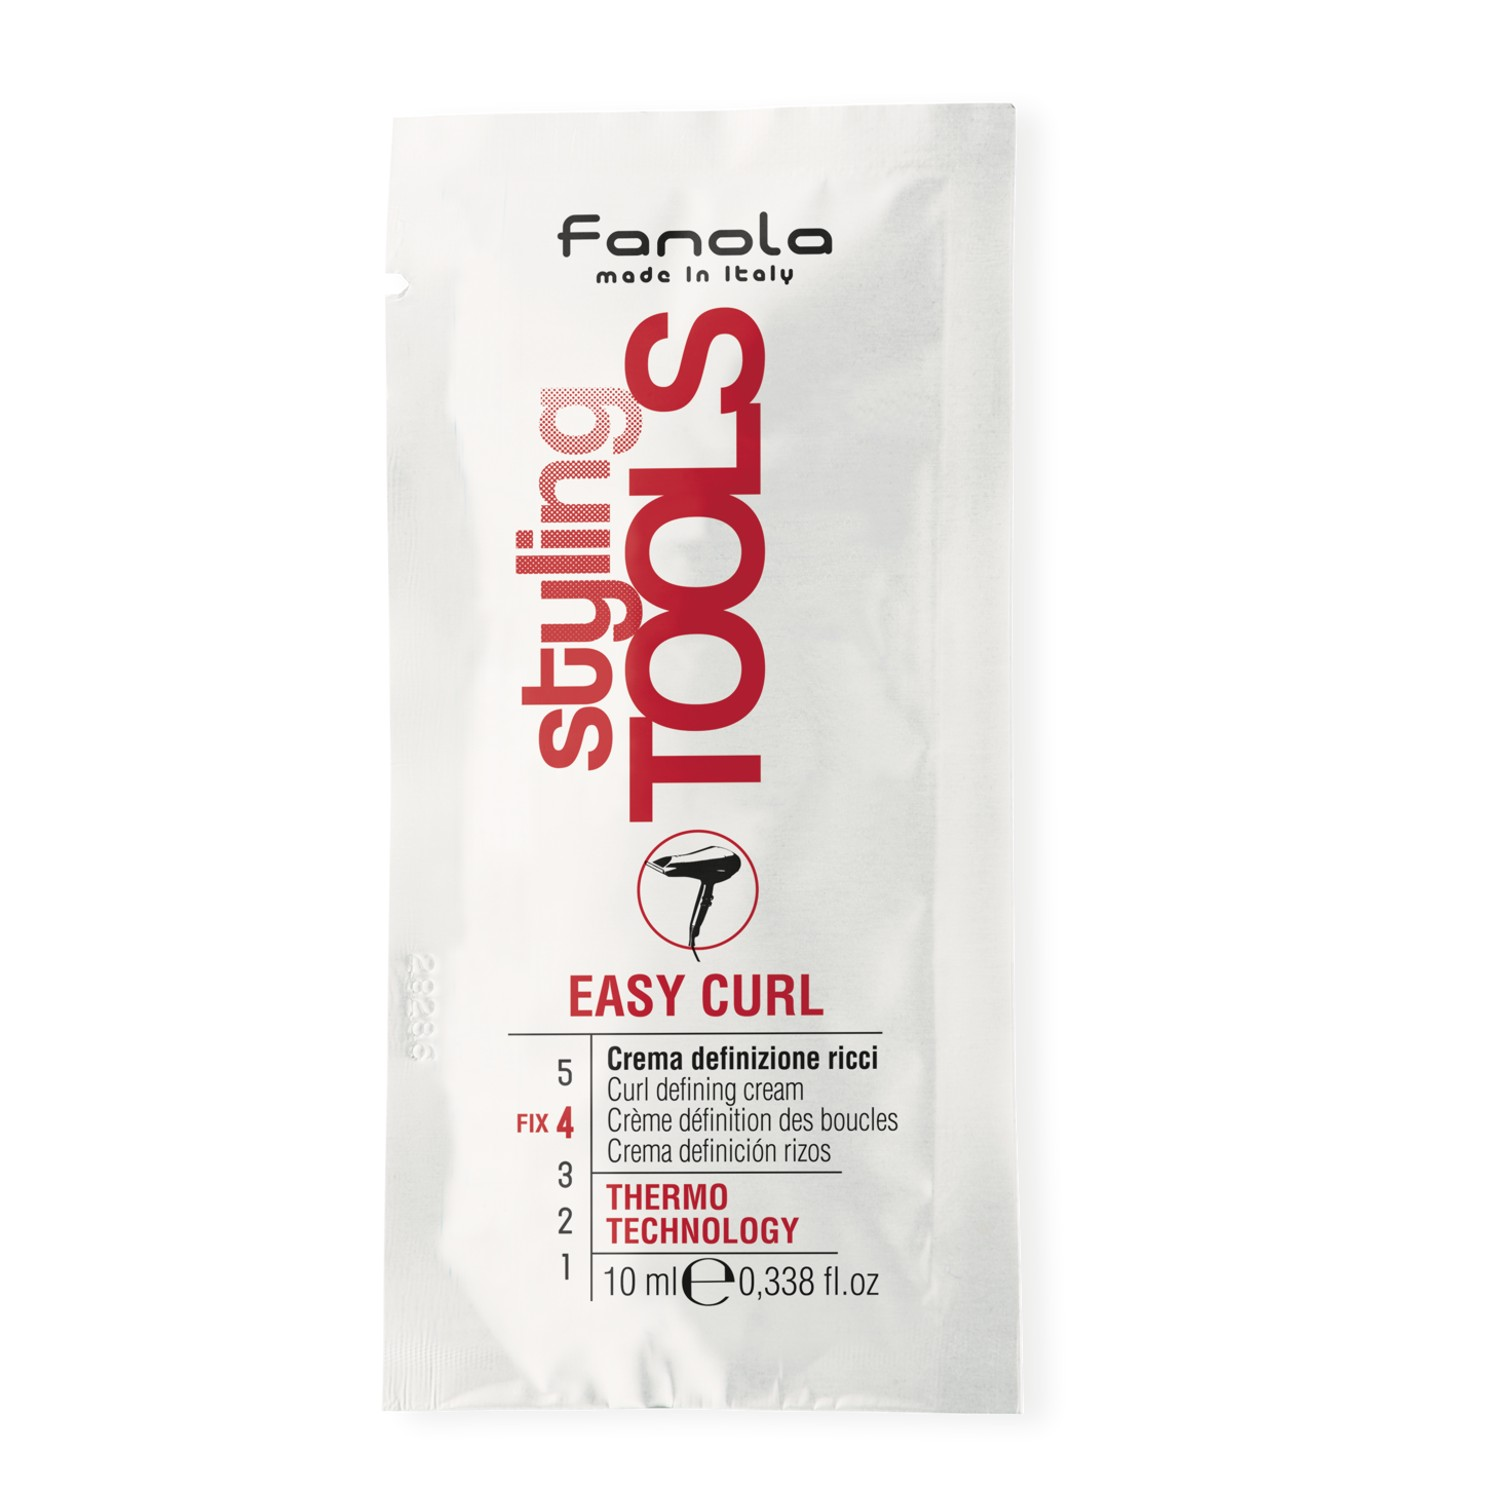 Fanola Styling Tools Easy Curl 10 ml